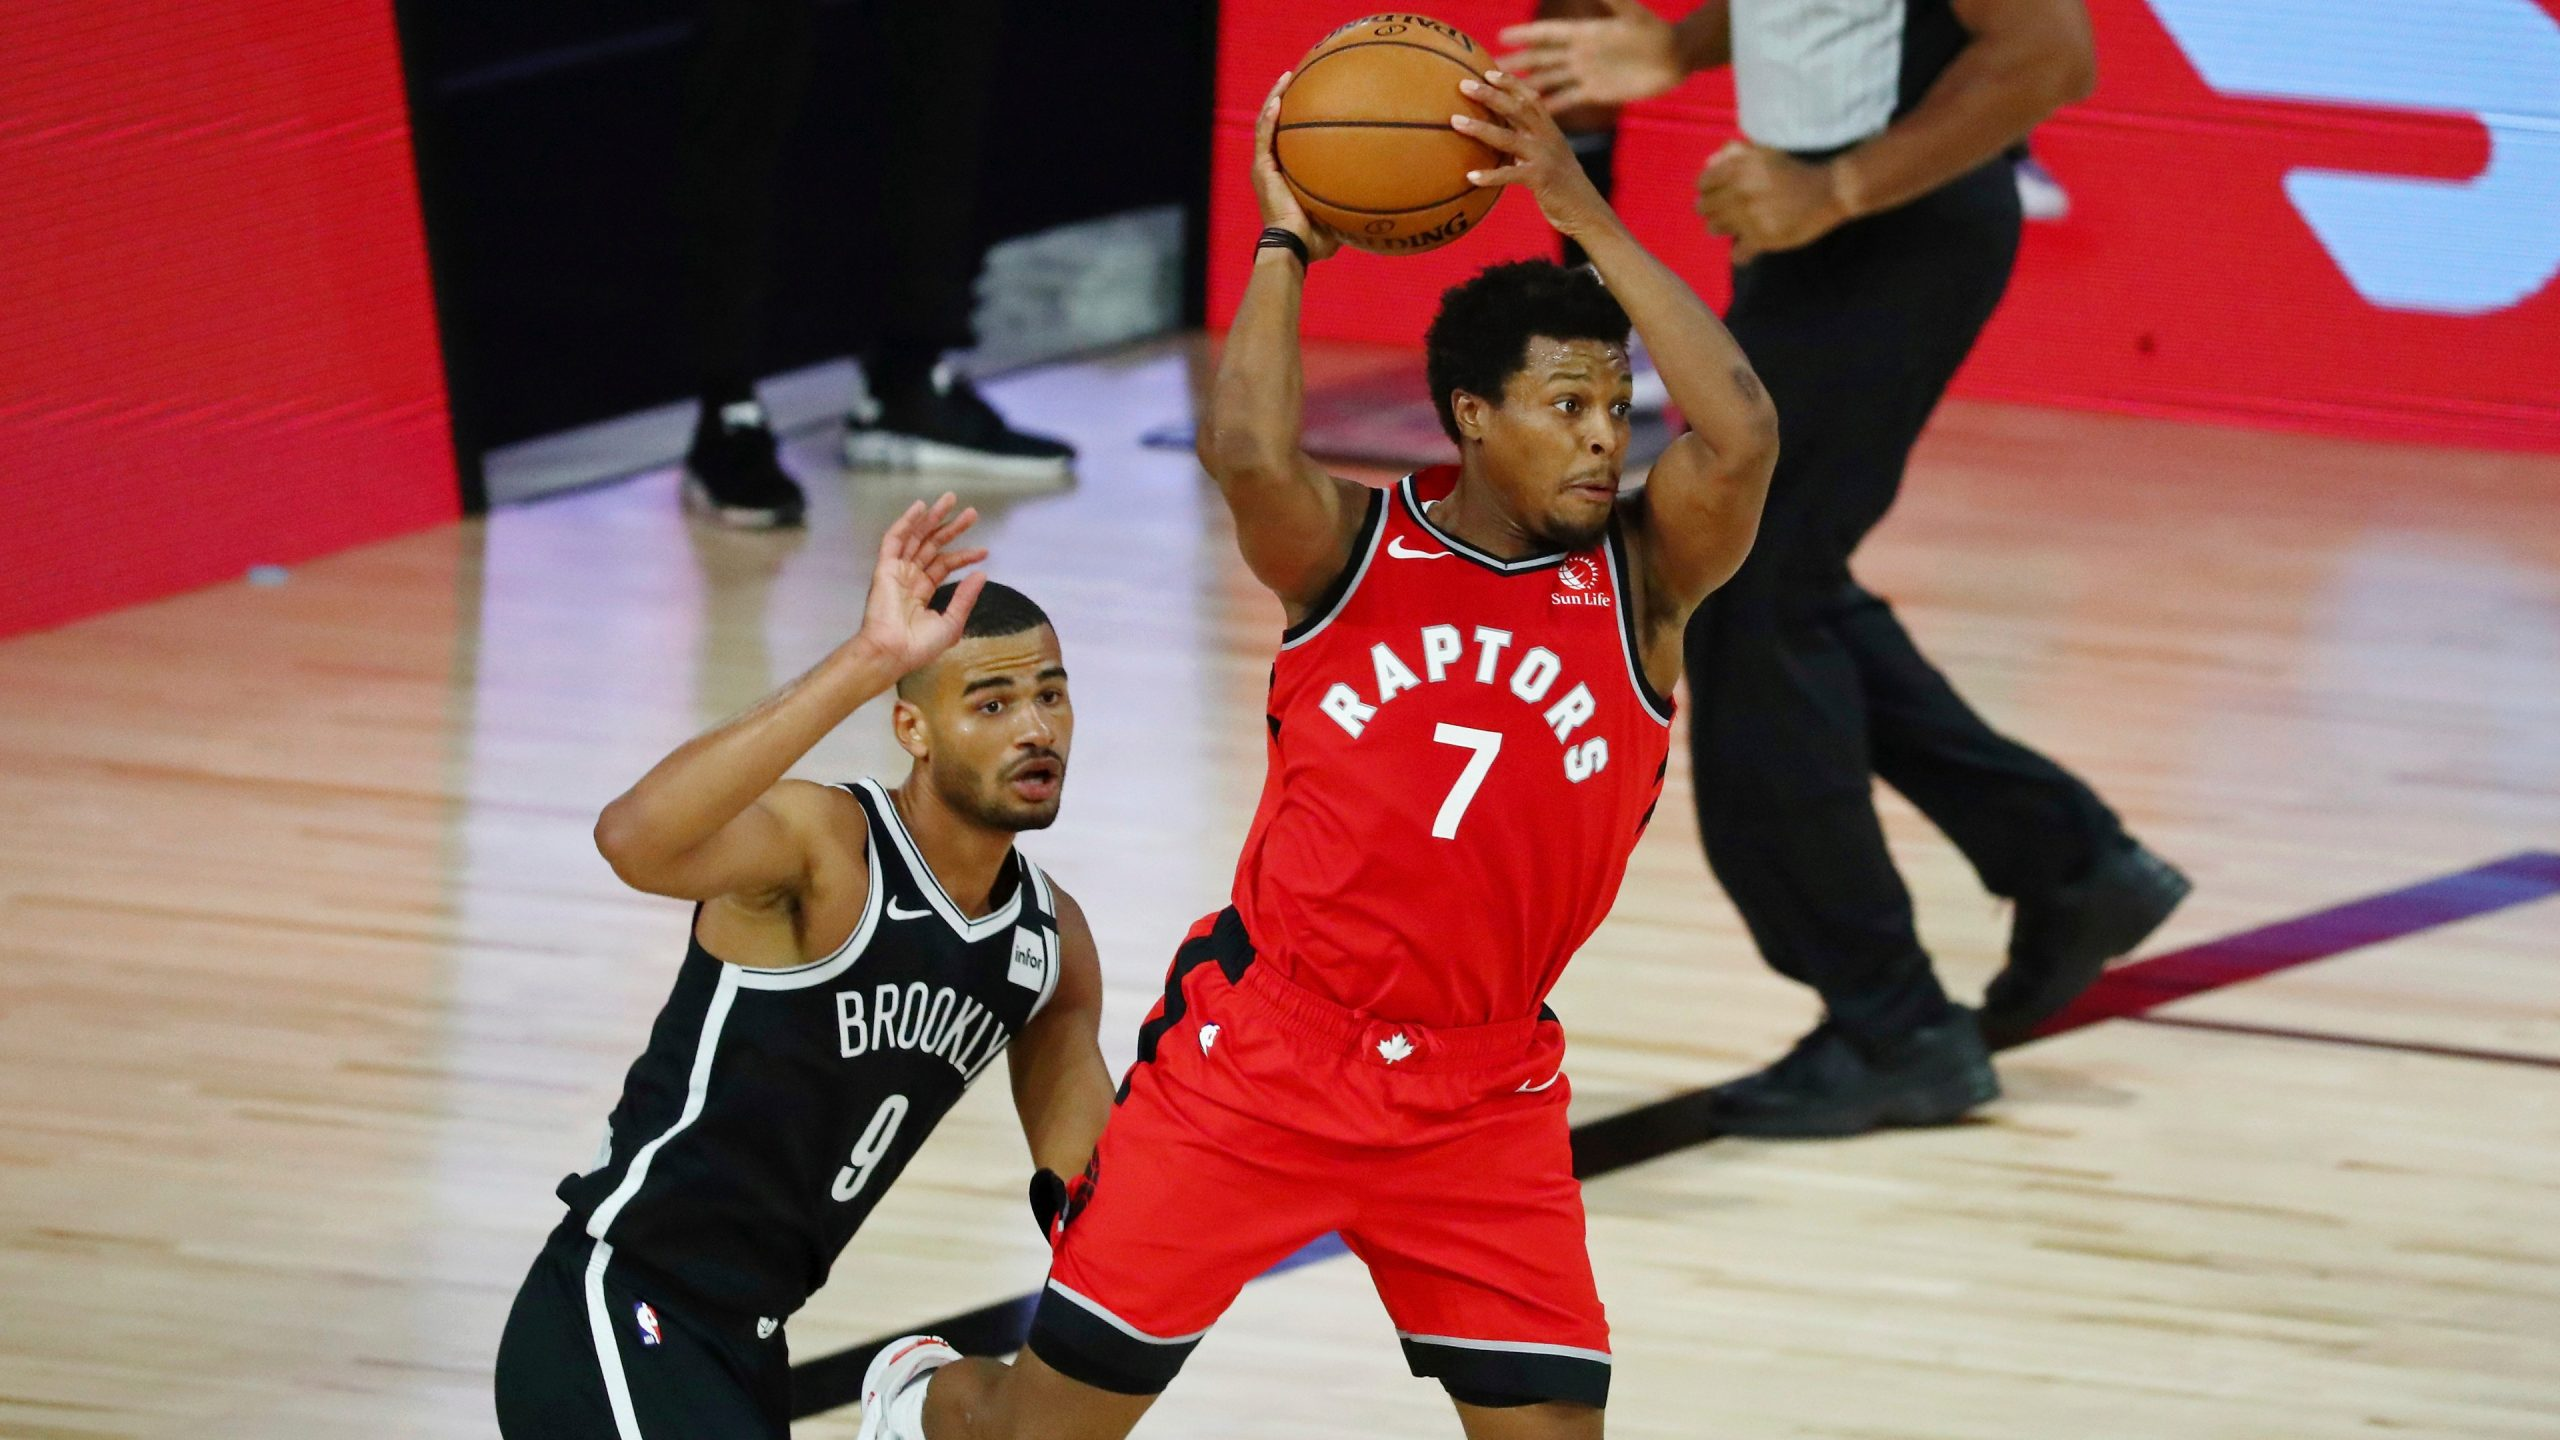 Raptors' Kyle Lowry will not return to Match 4 vs. Nets because of to injury